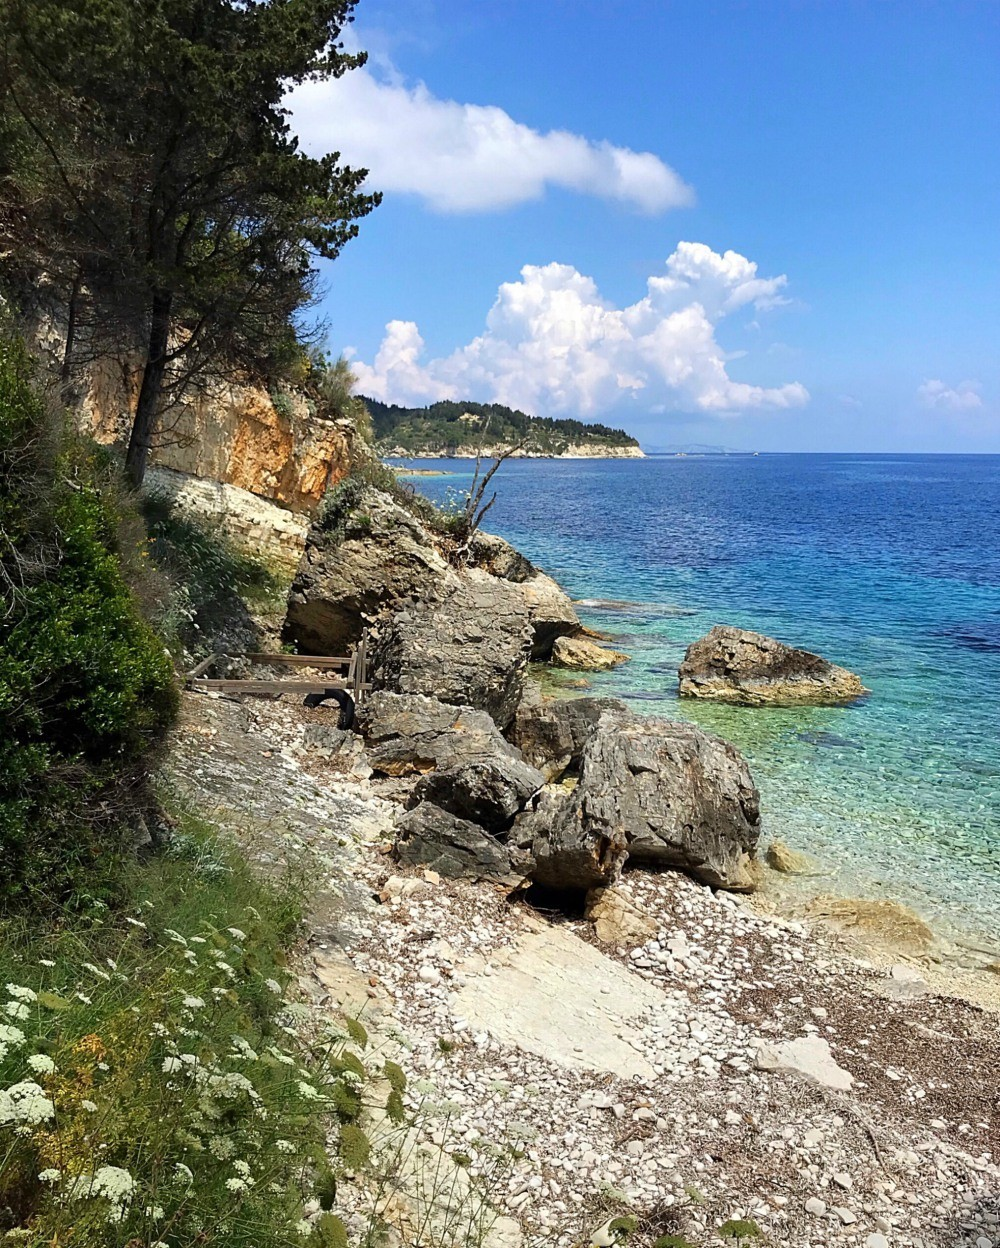 Luxury Paxos Villa Greece - Villa Glaros beach Photo Heatheronhertravels